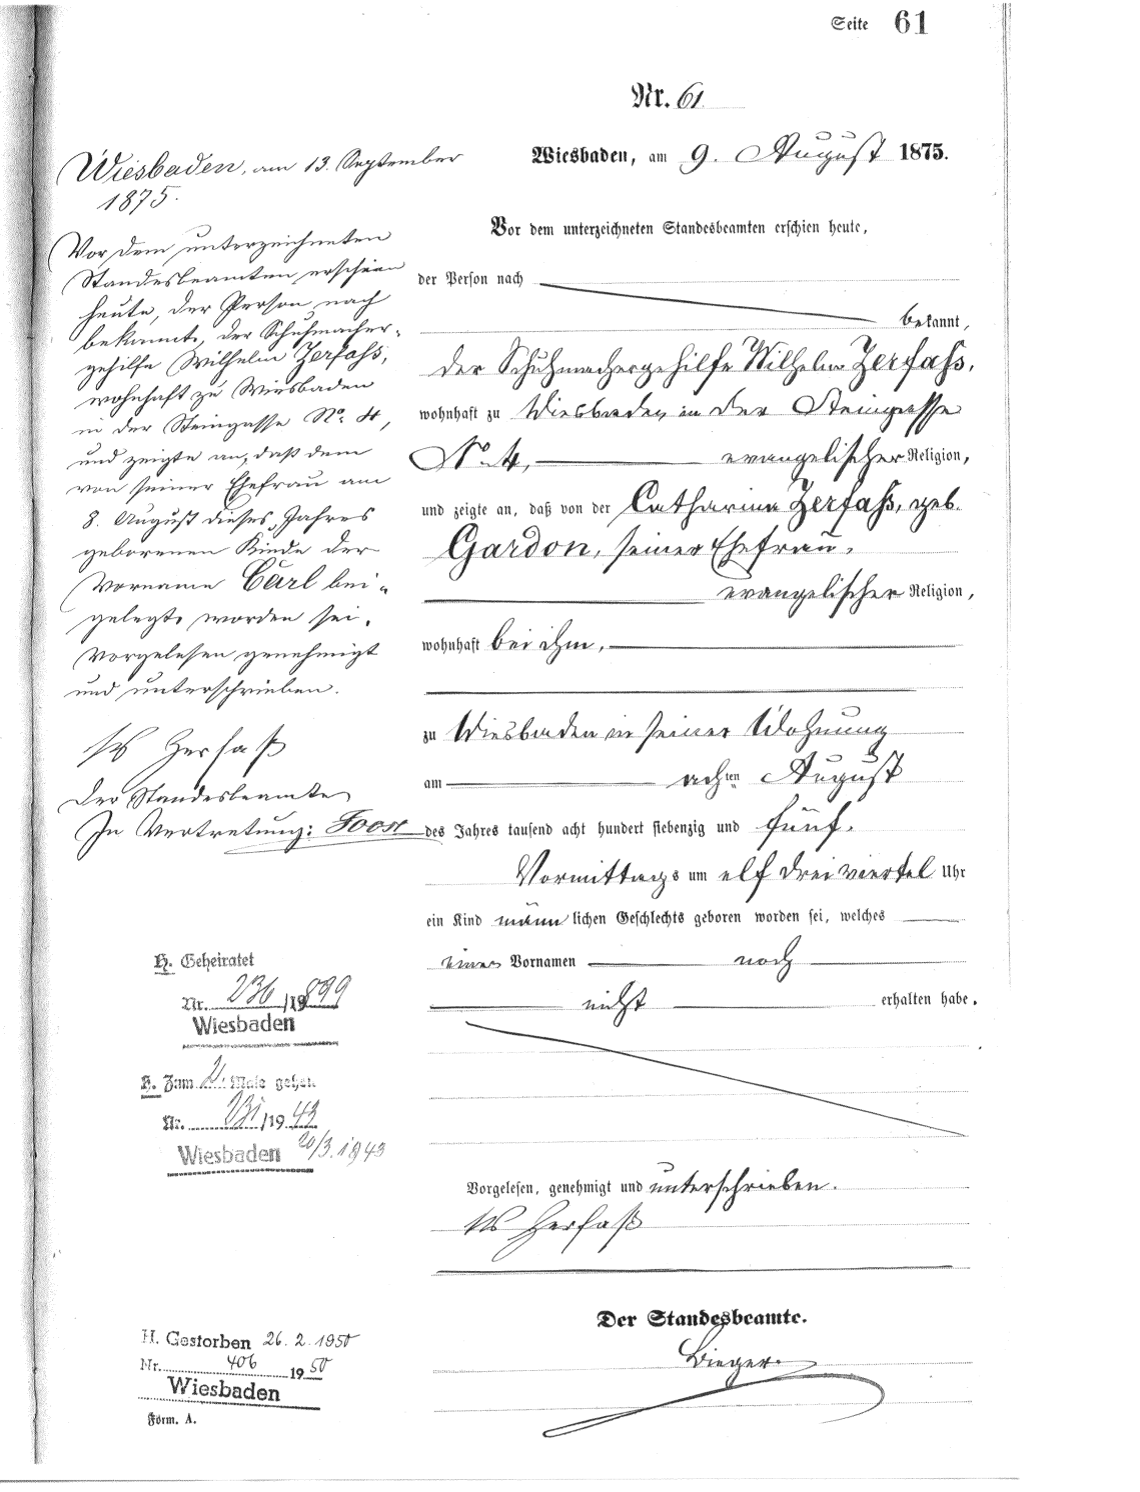 Civil Birth Registration, Wiesbaden, Darmstadt, Hessen, Germany, 1875